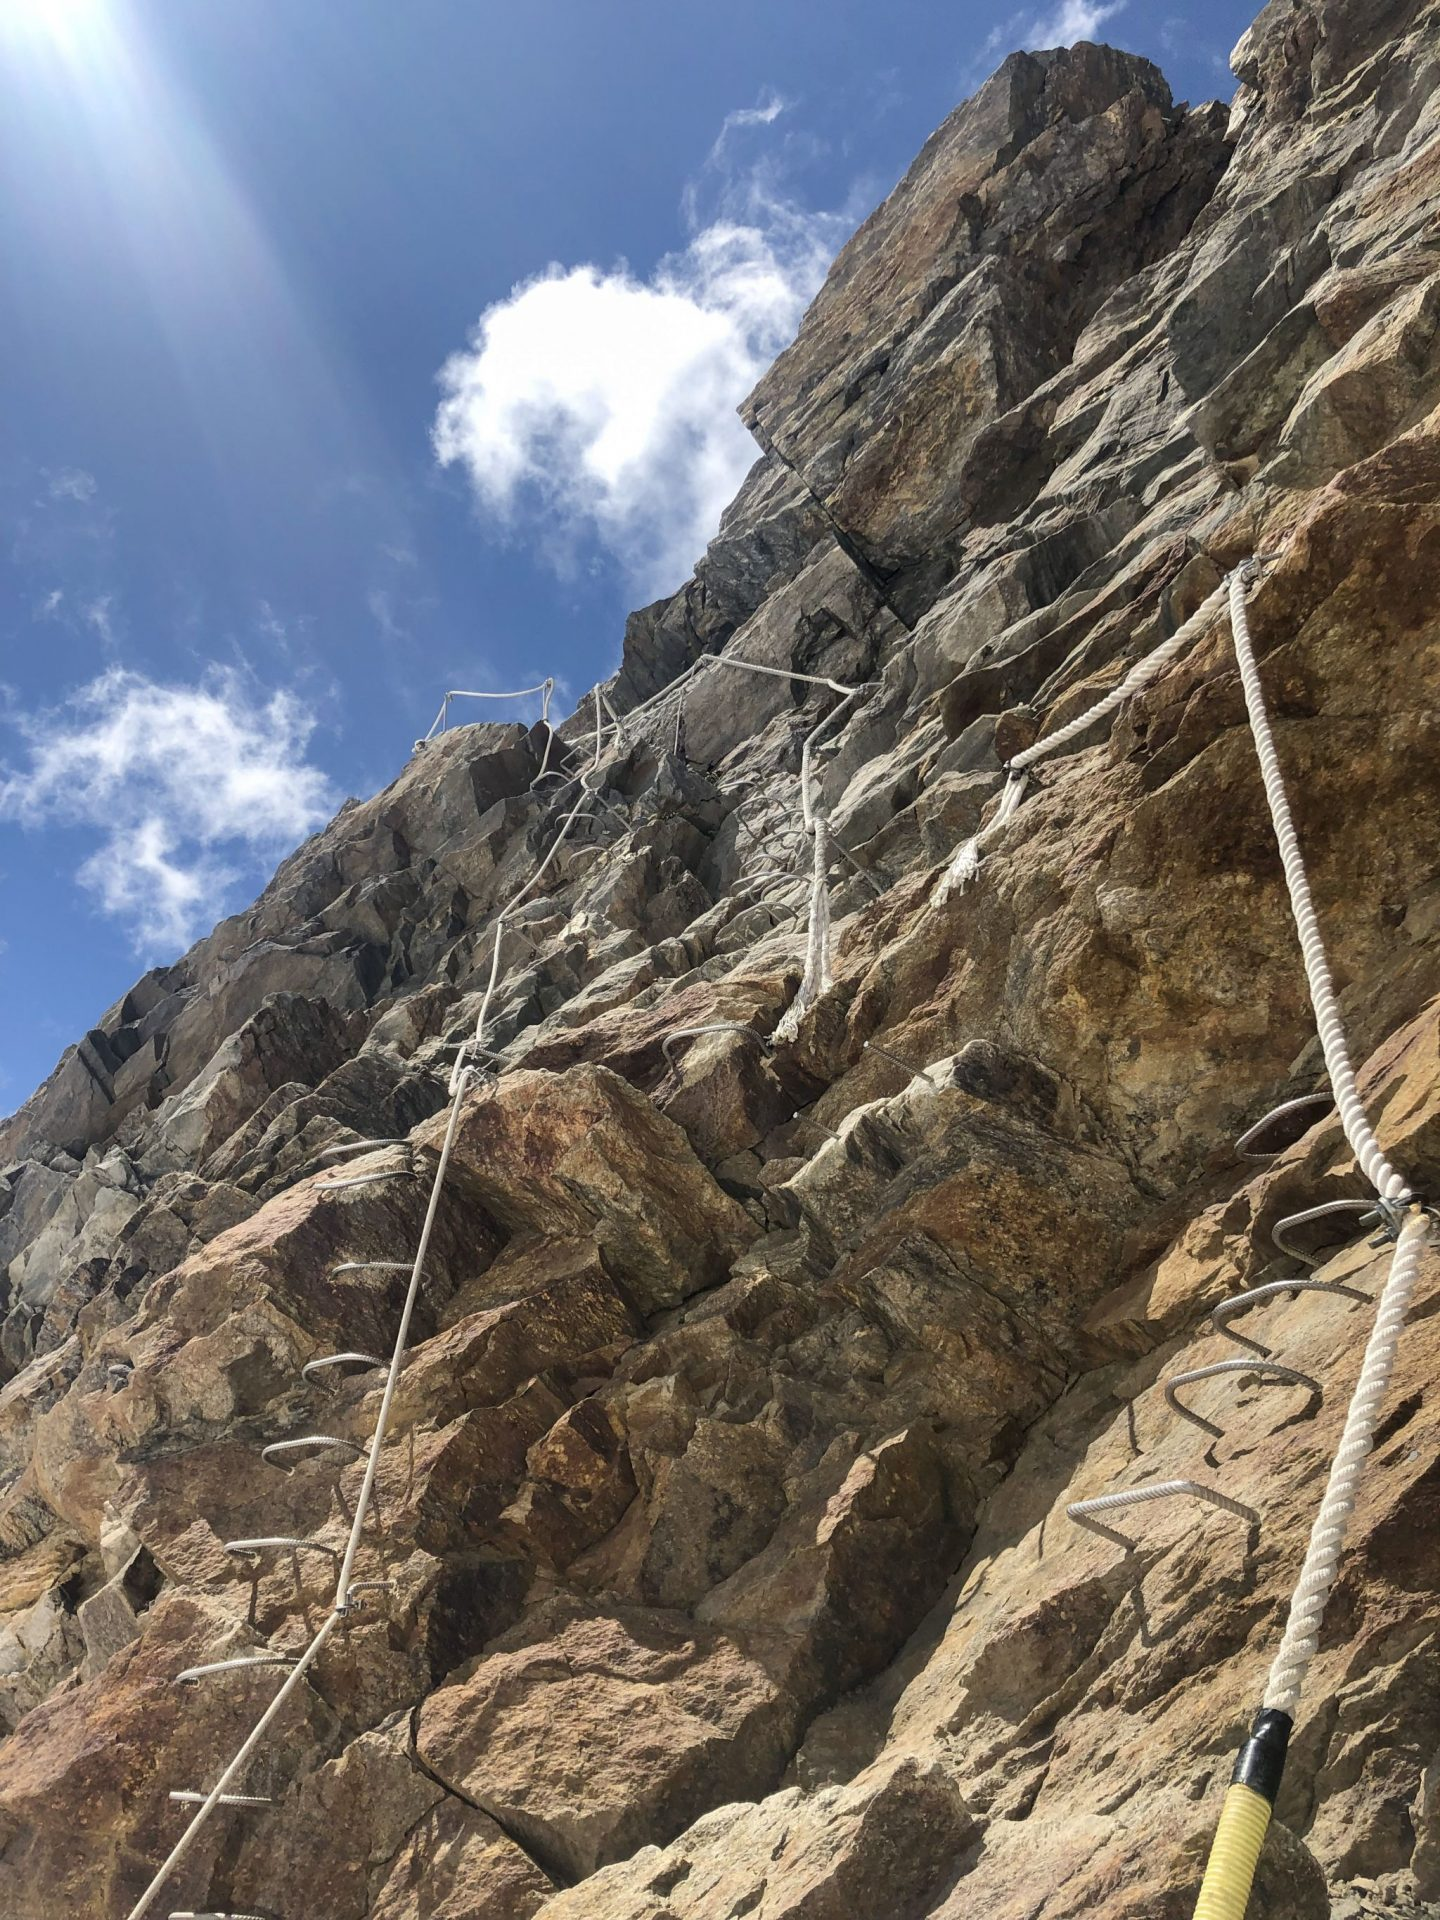 Ropes and ladders on the approach to the Gnifetti mountain hut